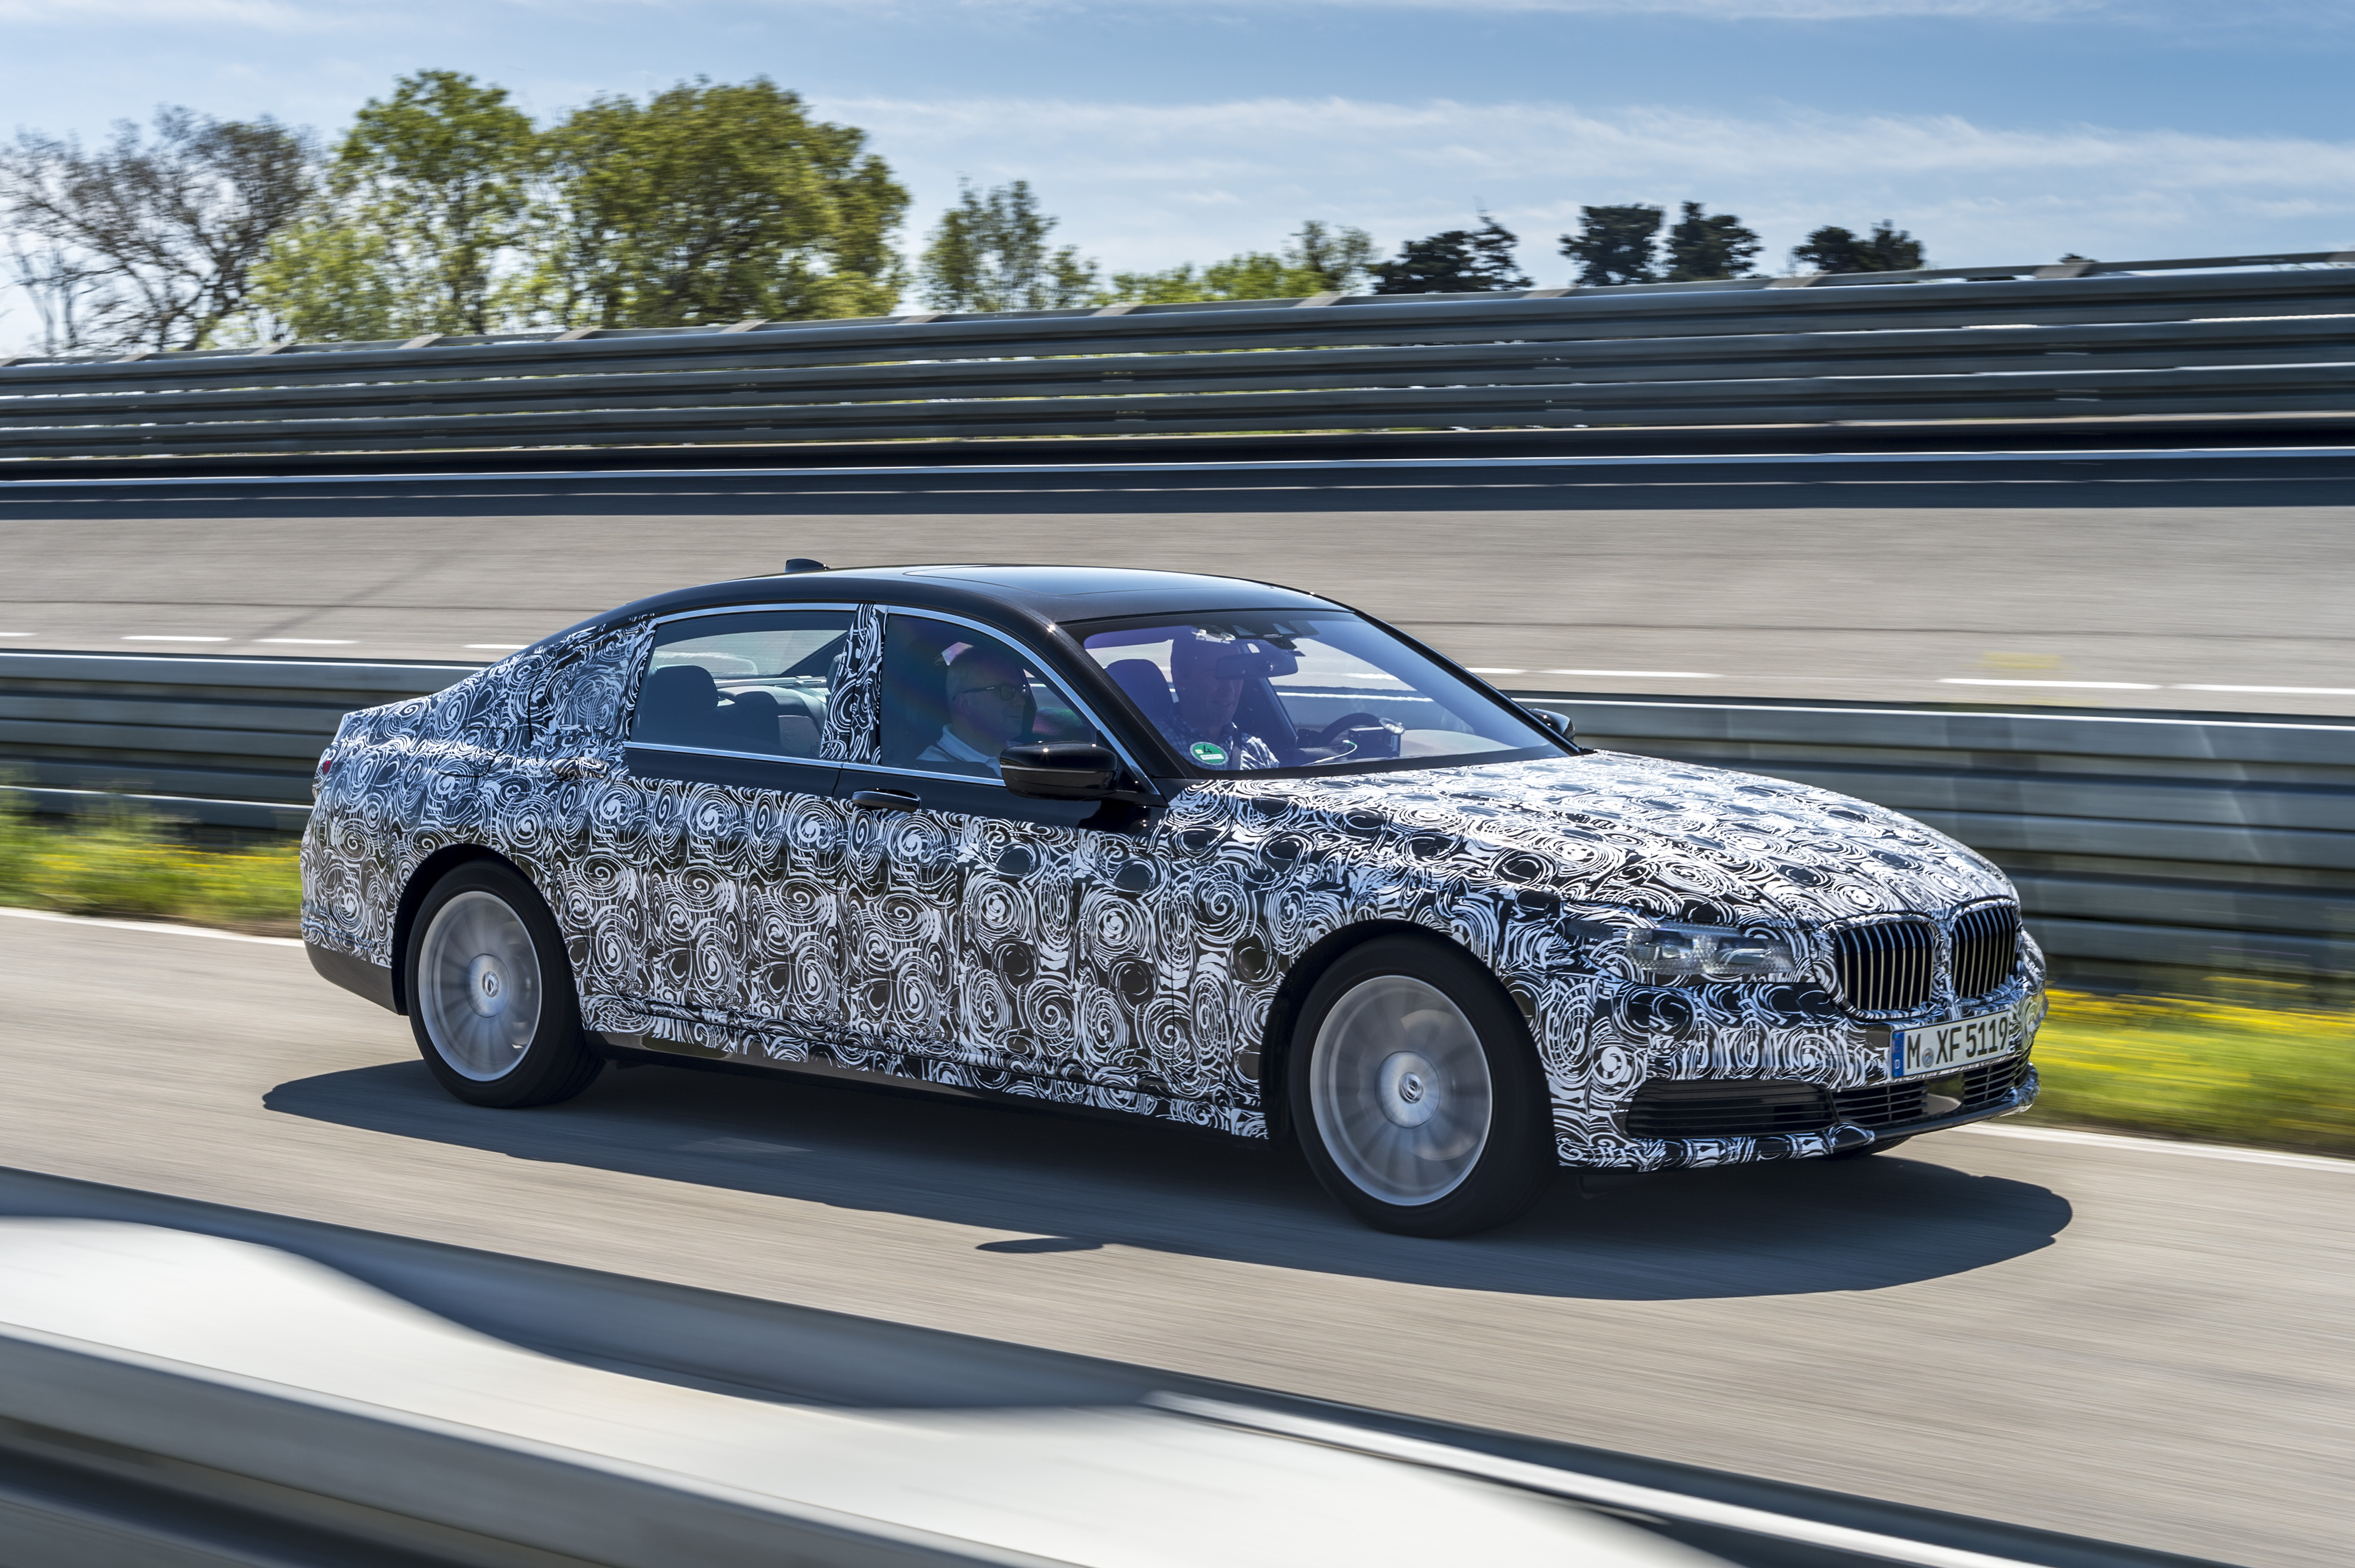 2016 BMW 7 Series Will Park Itself With No One In The Car